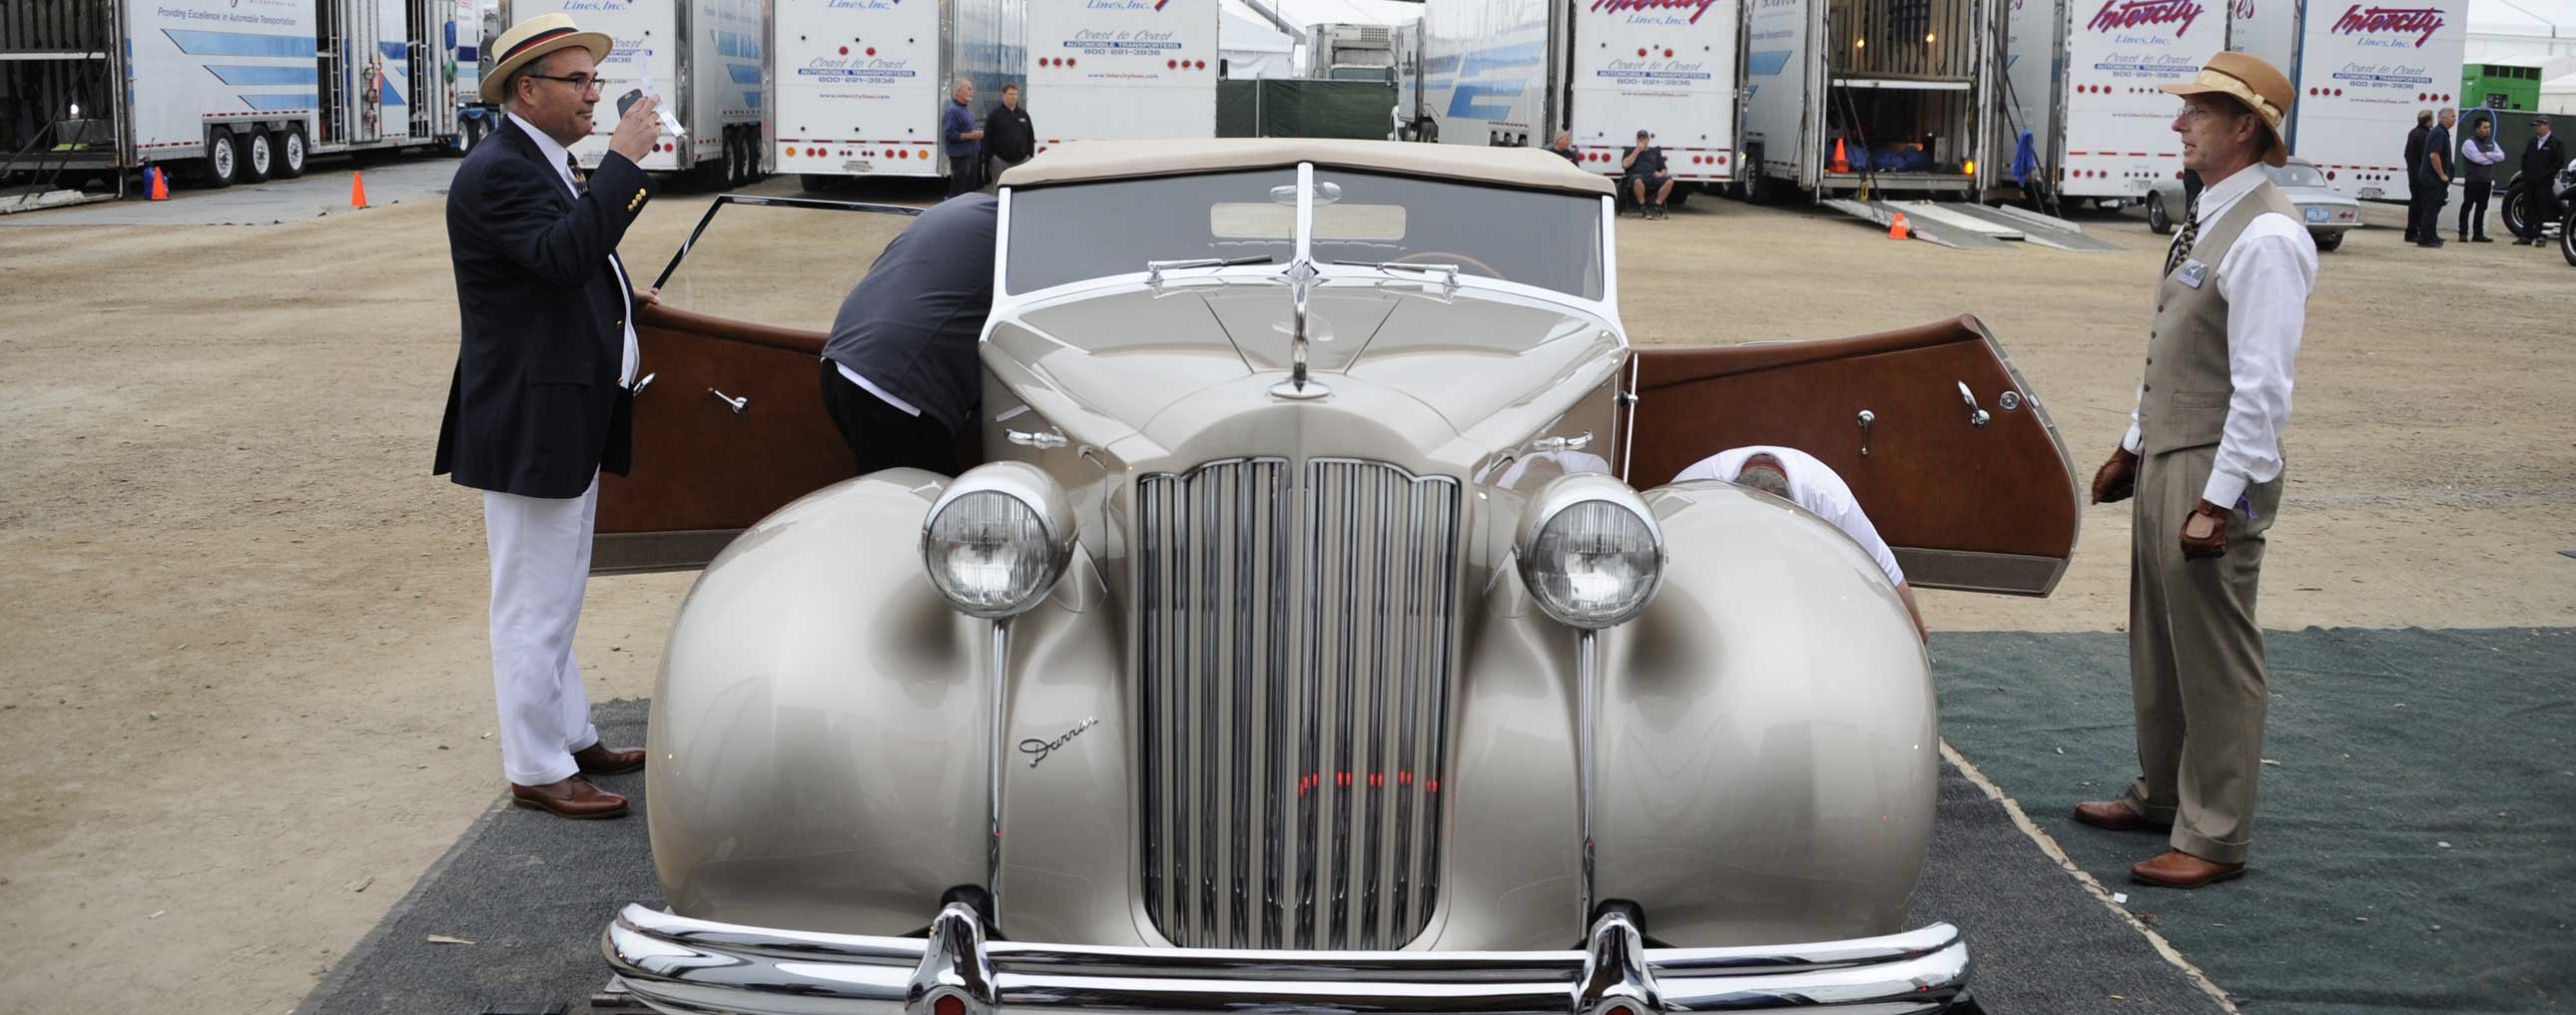 1939 Packard 1703 Super-8 Darrin Convertible Victoria | Pebble Beach Concours | The Milwaukee Masterpiece